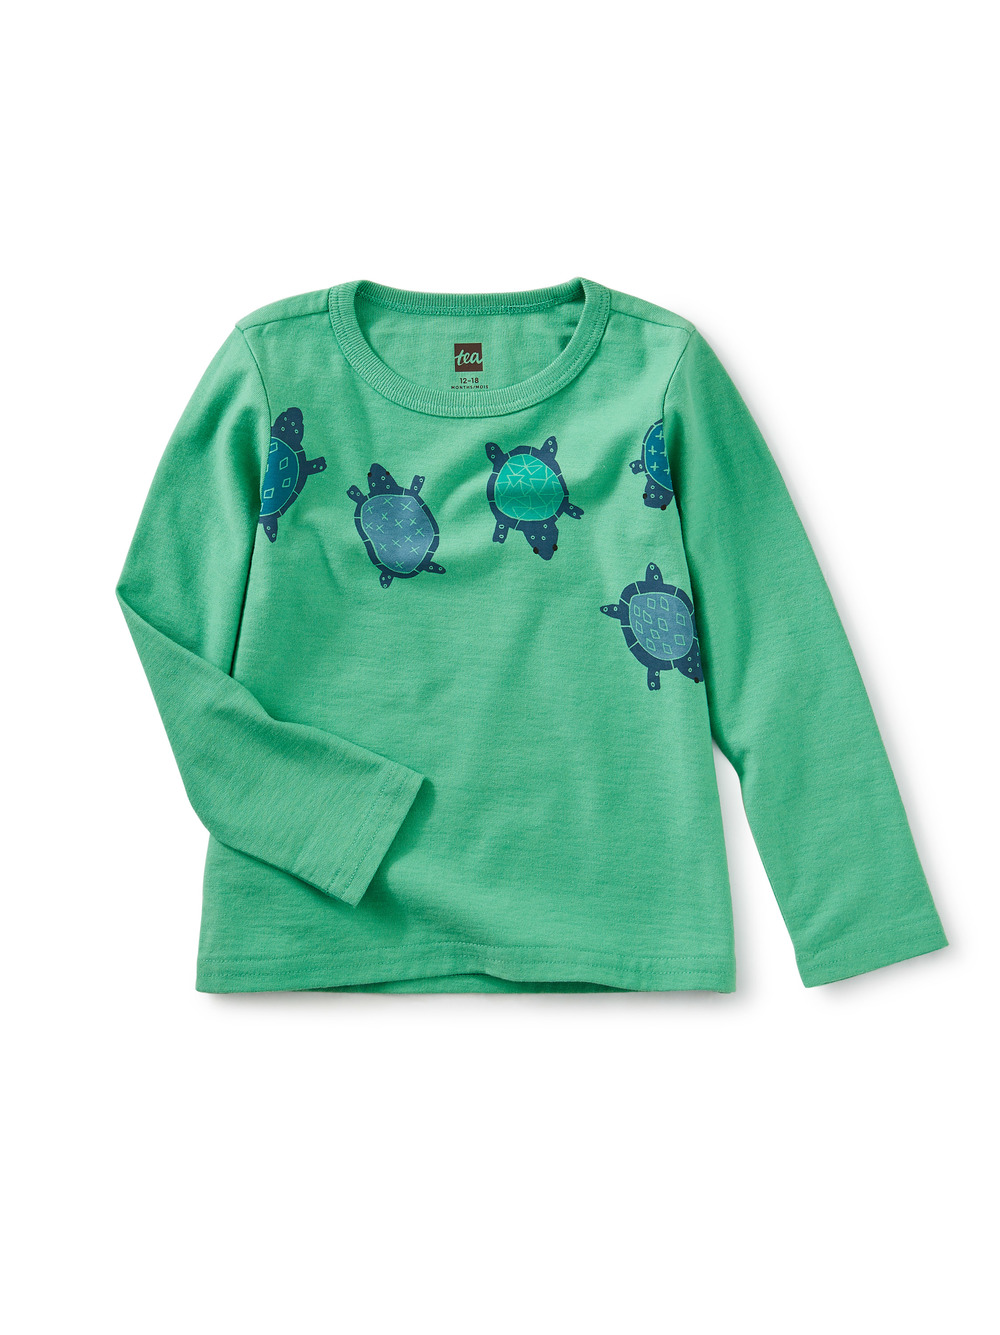 Totally Turtle Graphic Tee